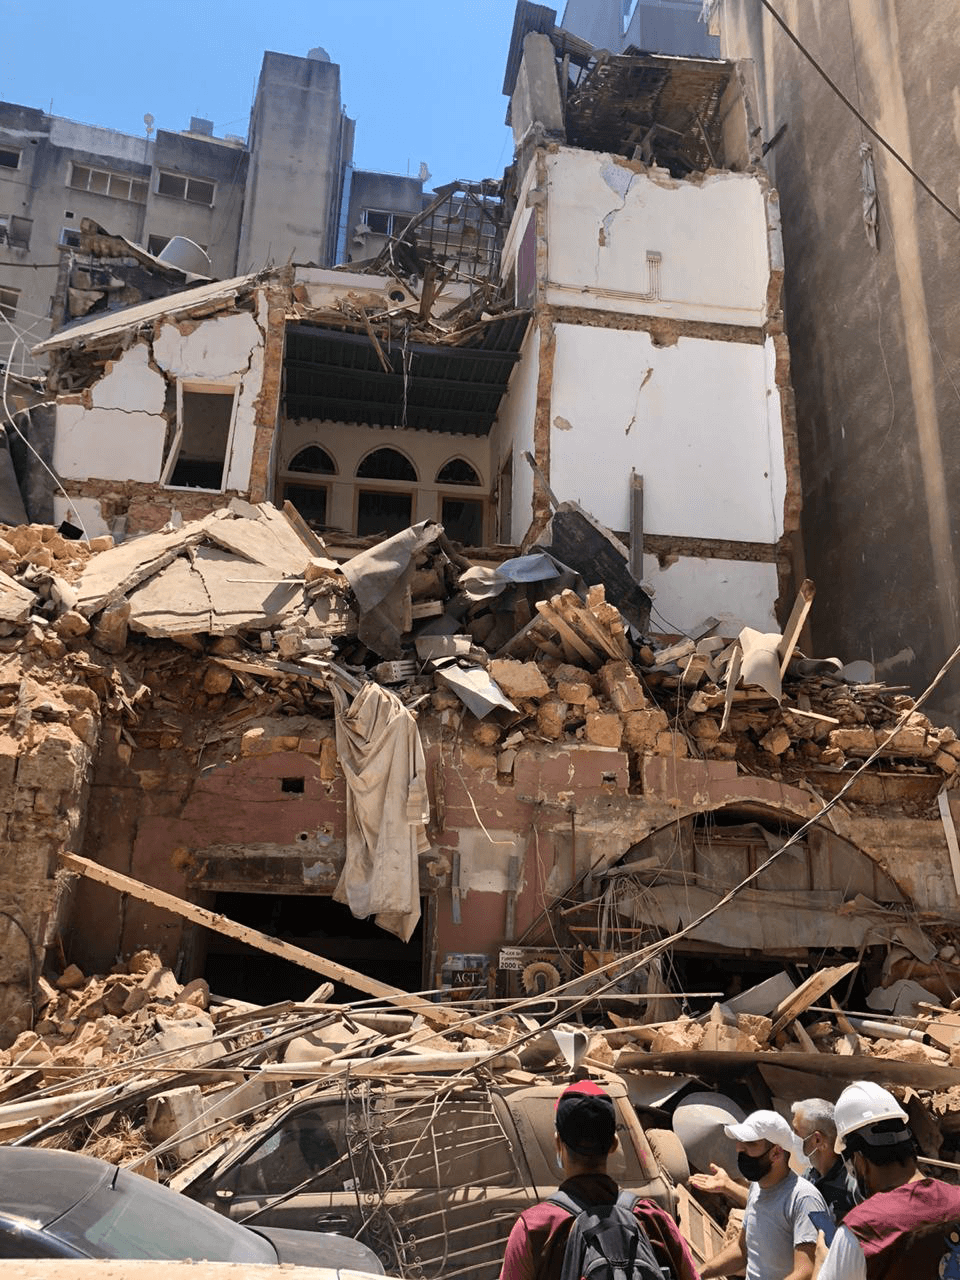 Destruction caused by the blast in Beirut.